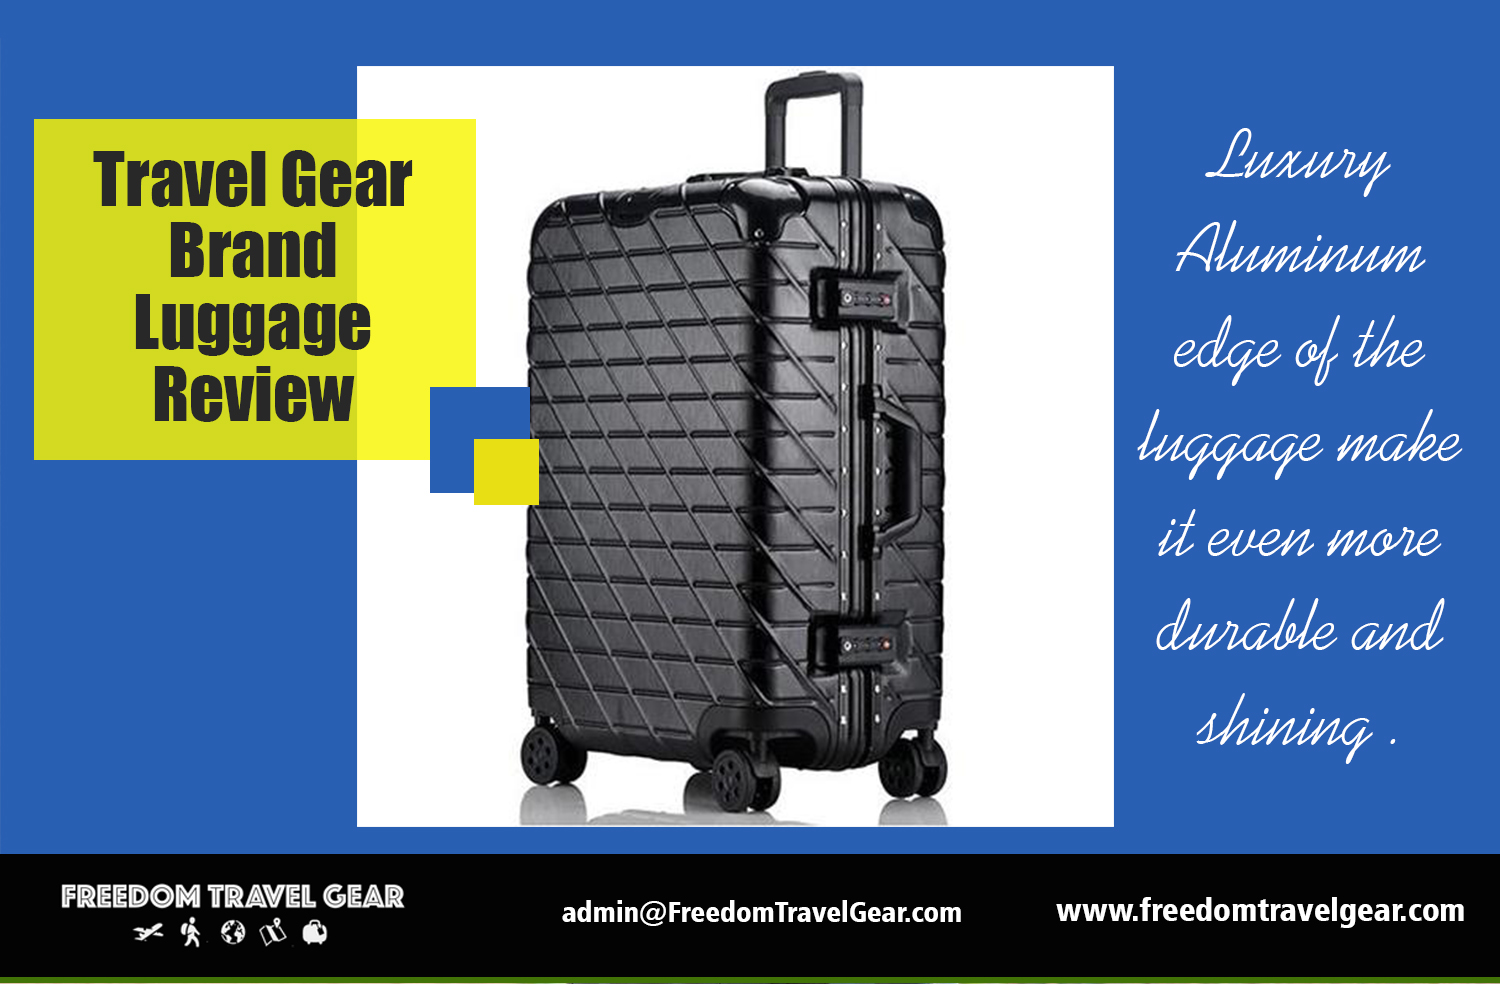 Travel gear brand luggage review social social social for Travel gear brand